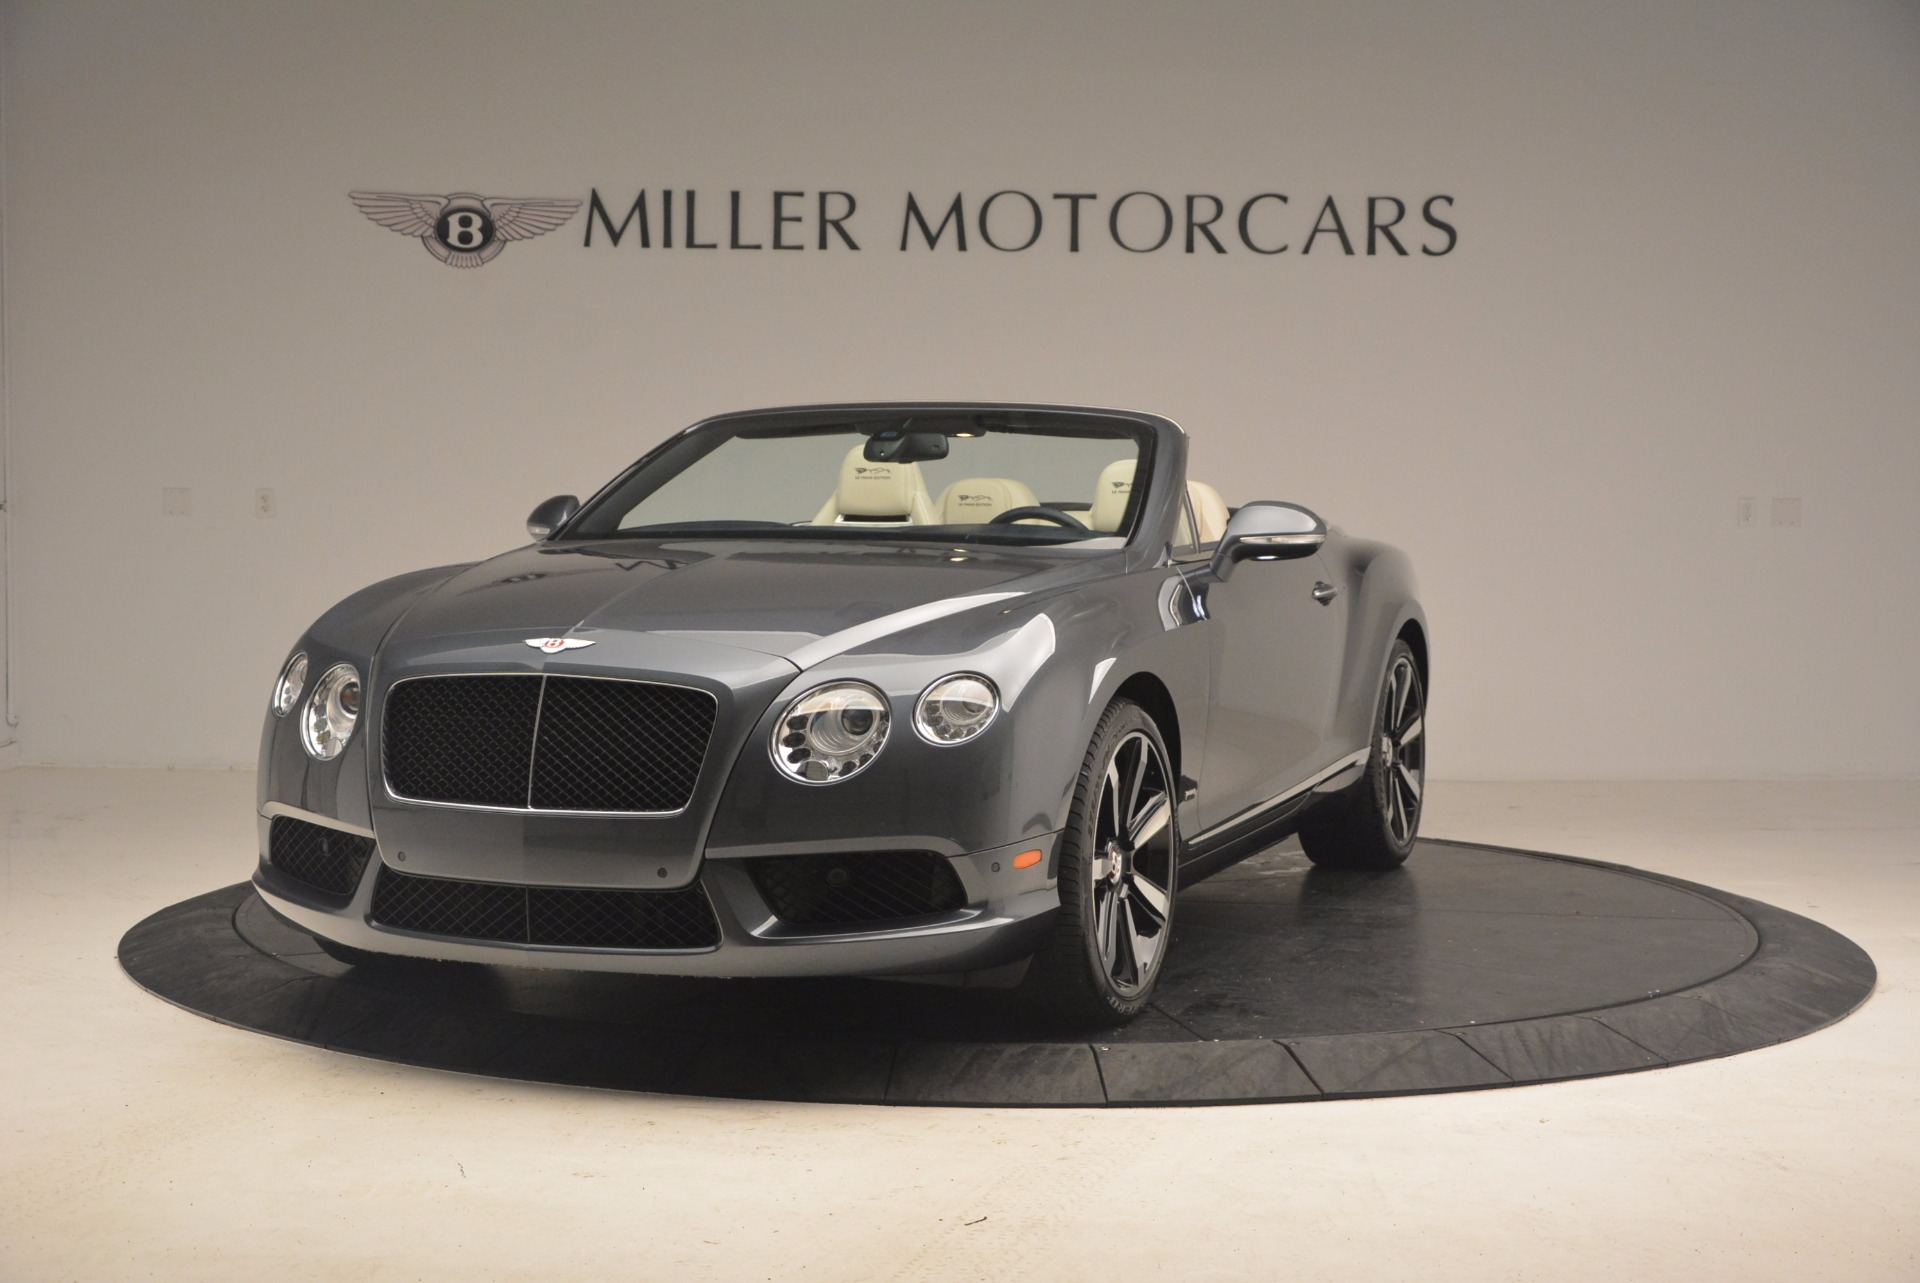 Used 2013 Bentley Continental GT V8 Le Mans Edition, 1 of 48 For Sale In Greenwich, CT. Alfa Romeo of Greenwich, 7226 1288_main